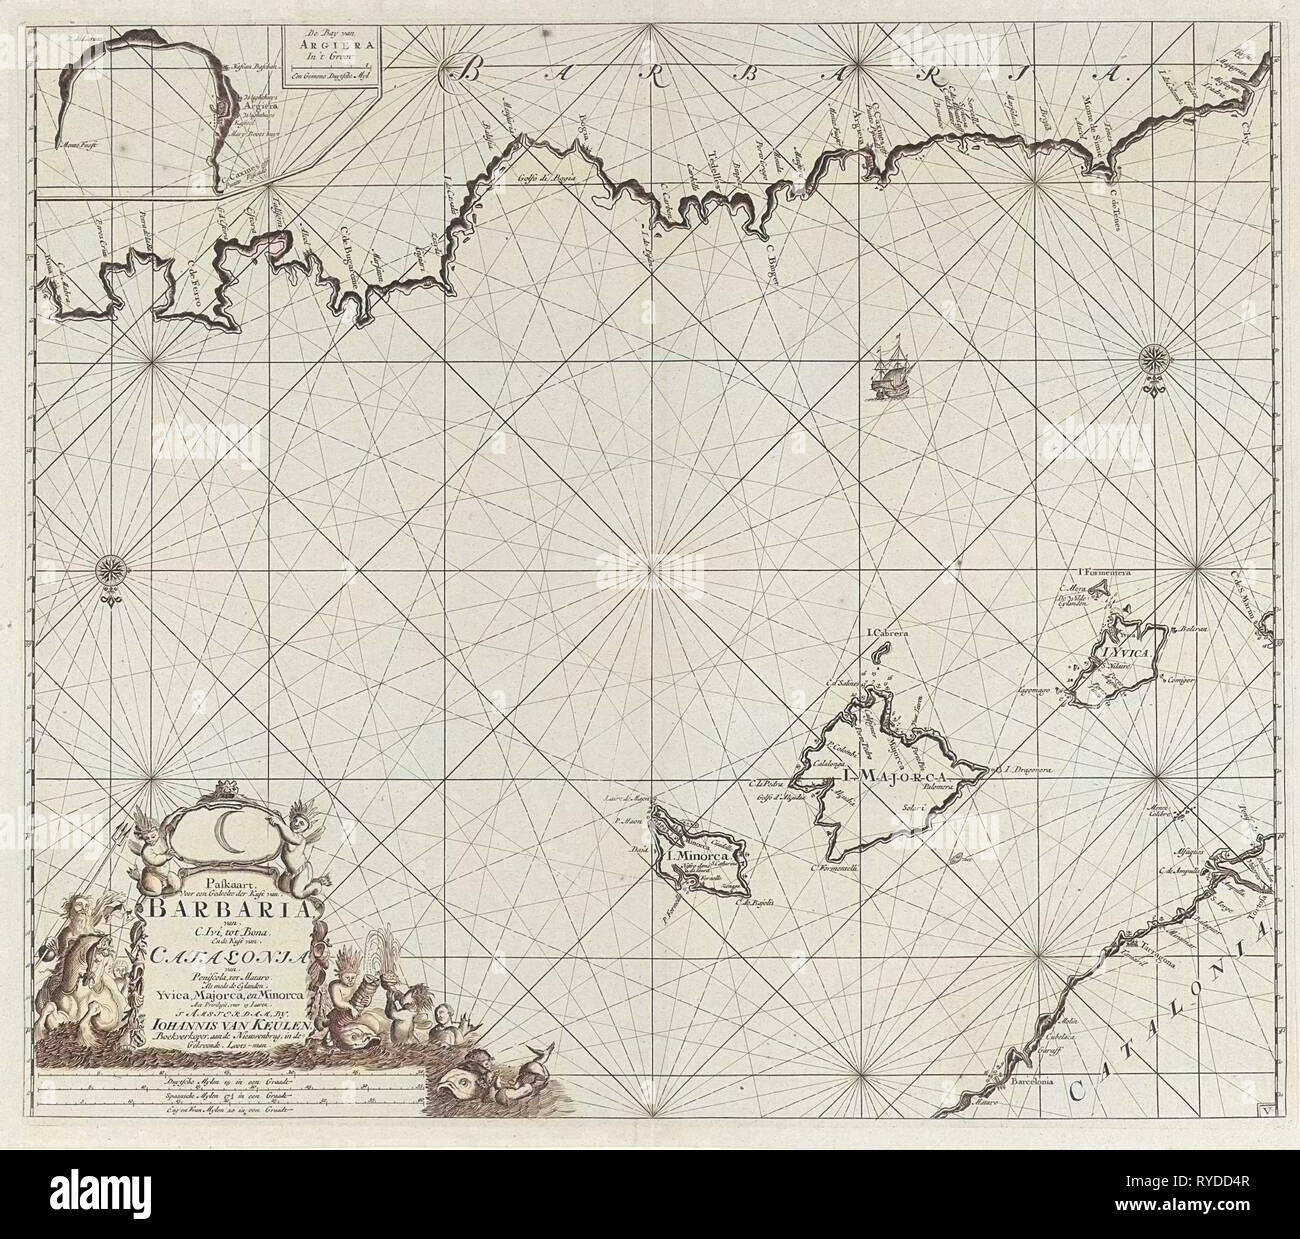 Sea chart of a part of the Mediterranean Sea with the coasts of Spain and Algeria, Anonymous, Johannes van Keulen (I), unknown, 1682 - 1803 - Stock Image